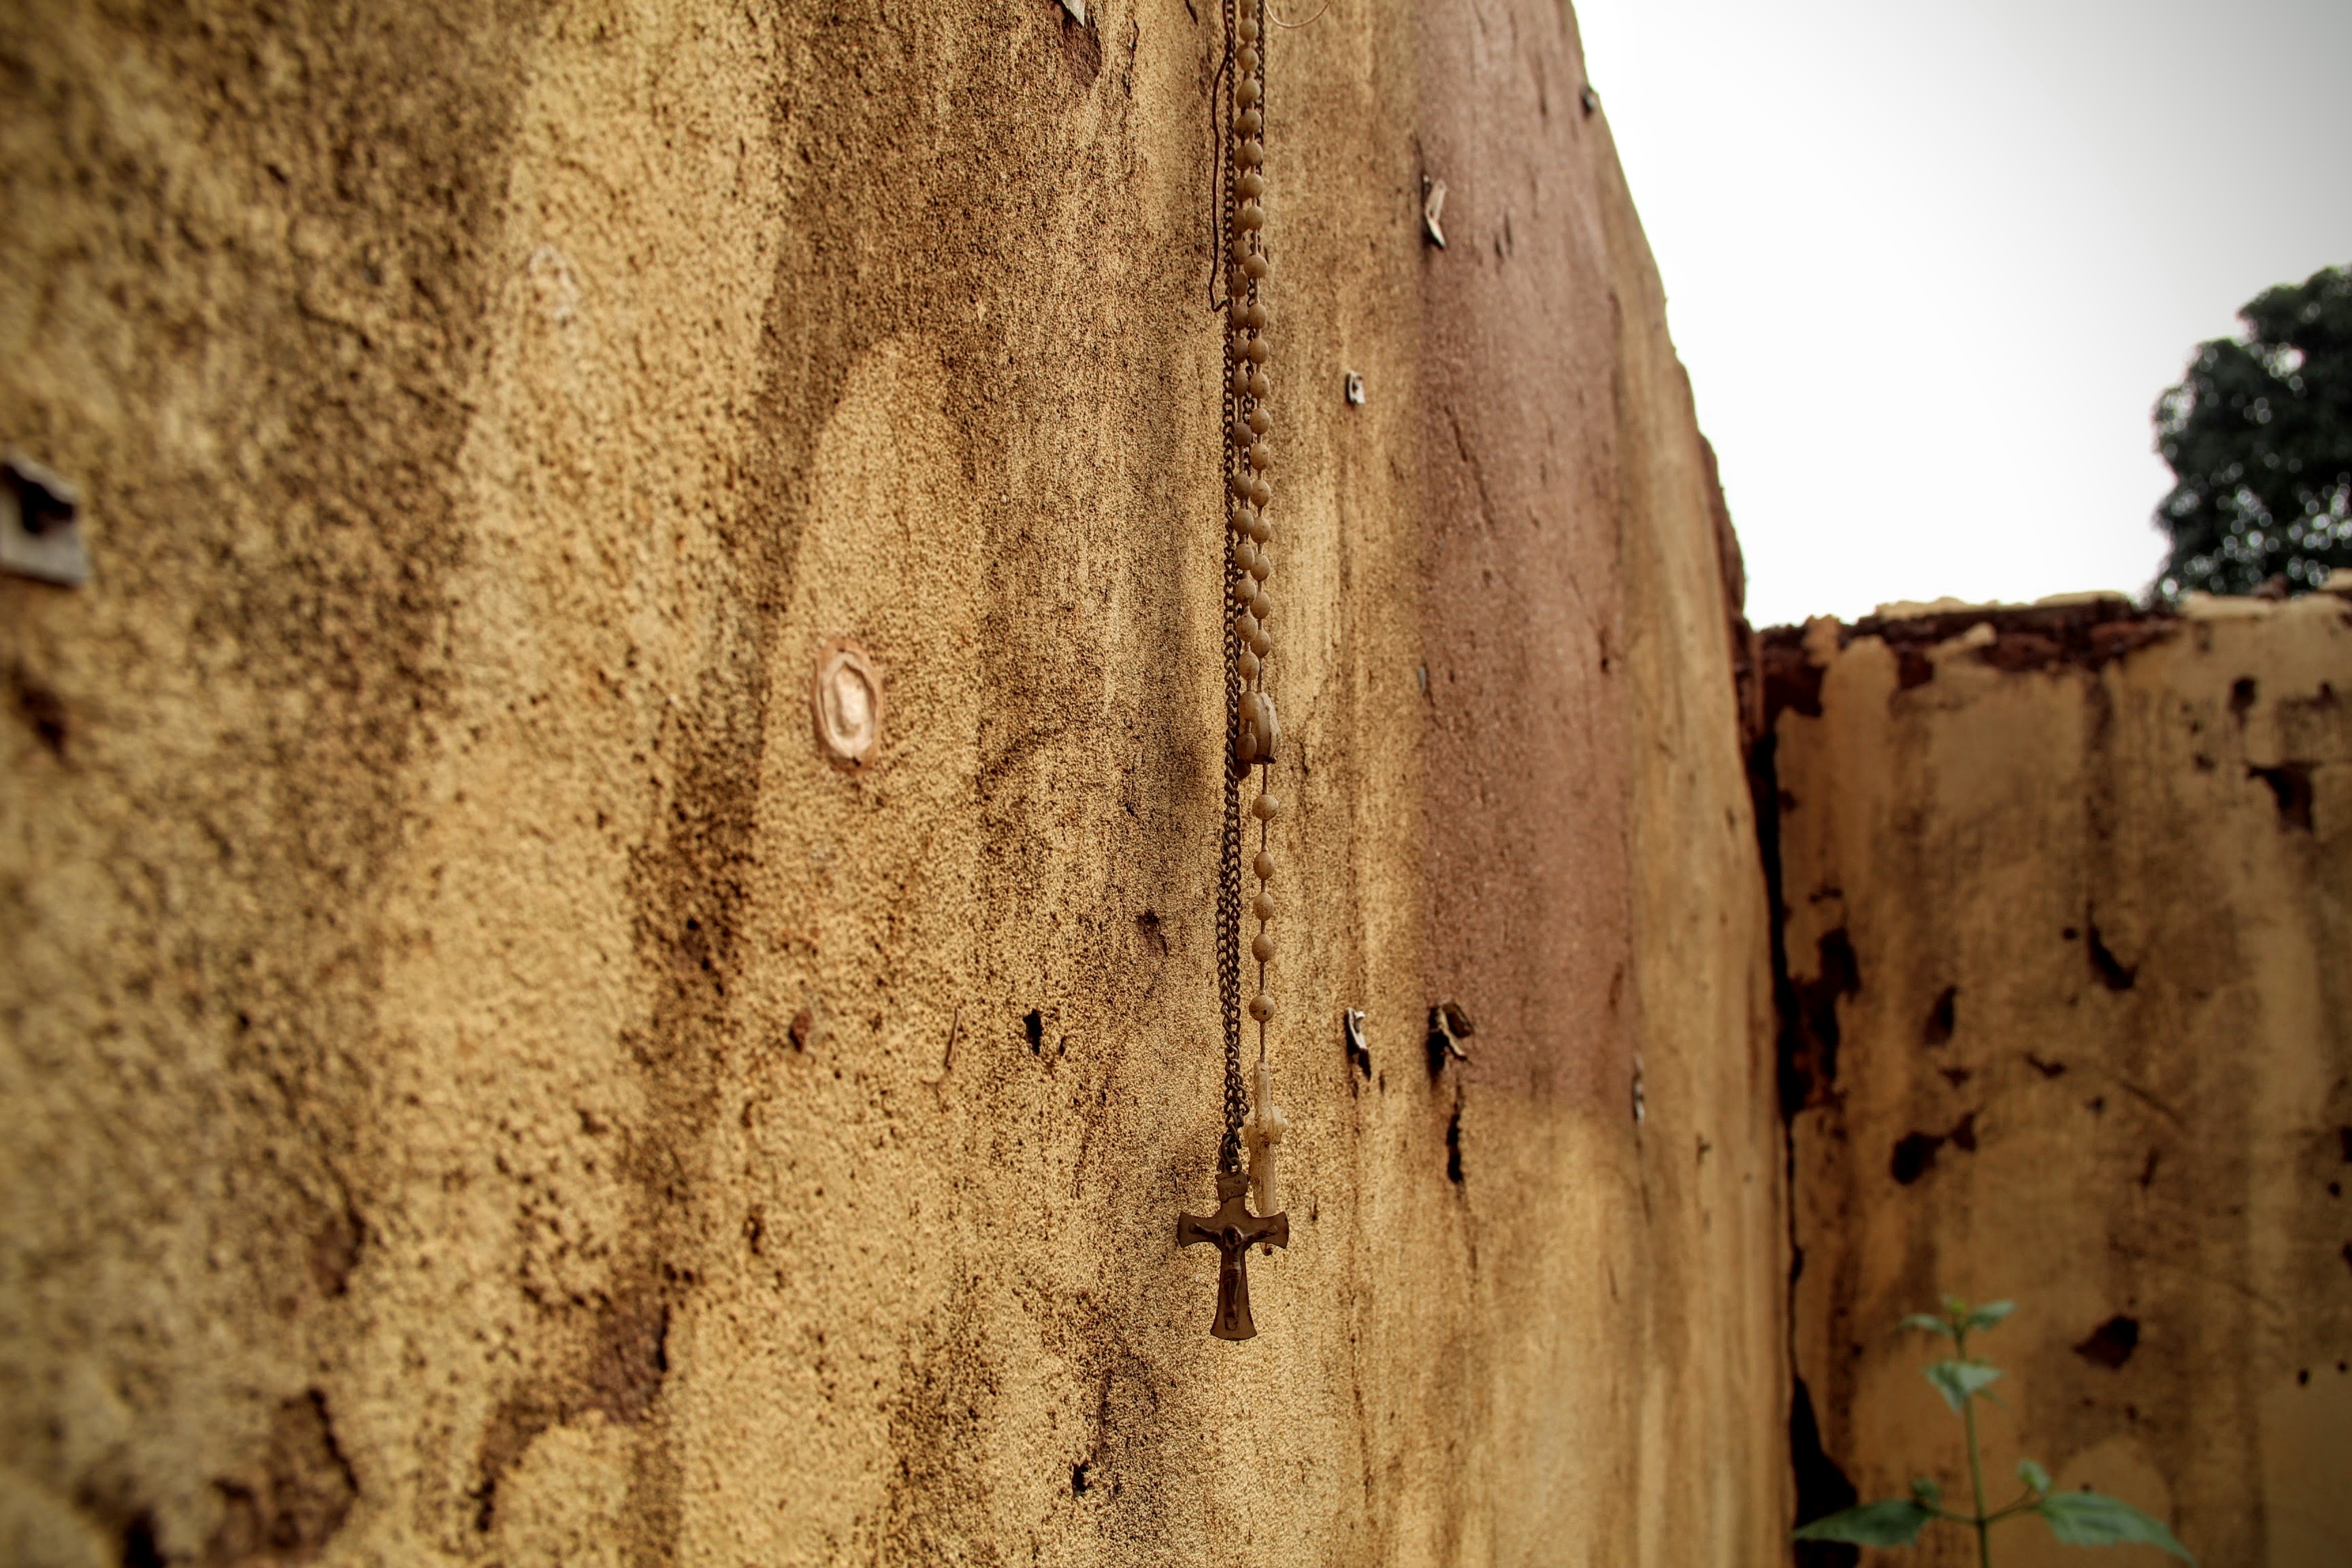 A crucifix hangs on a wall